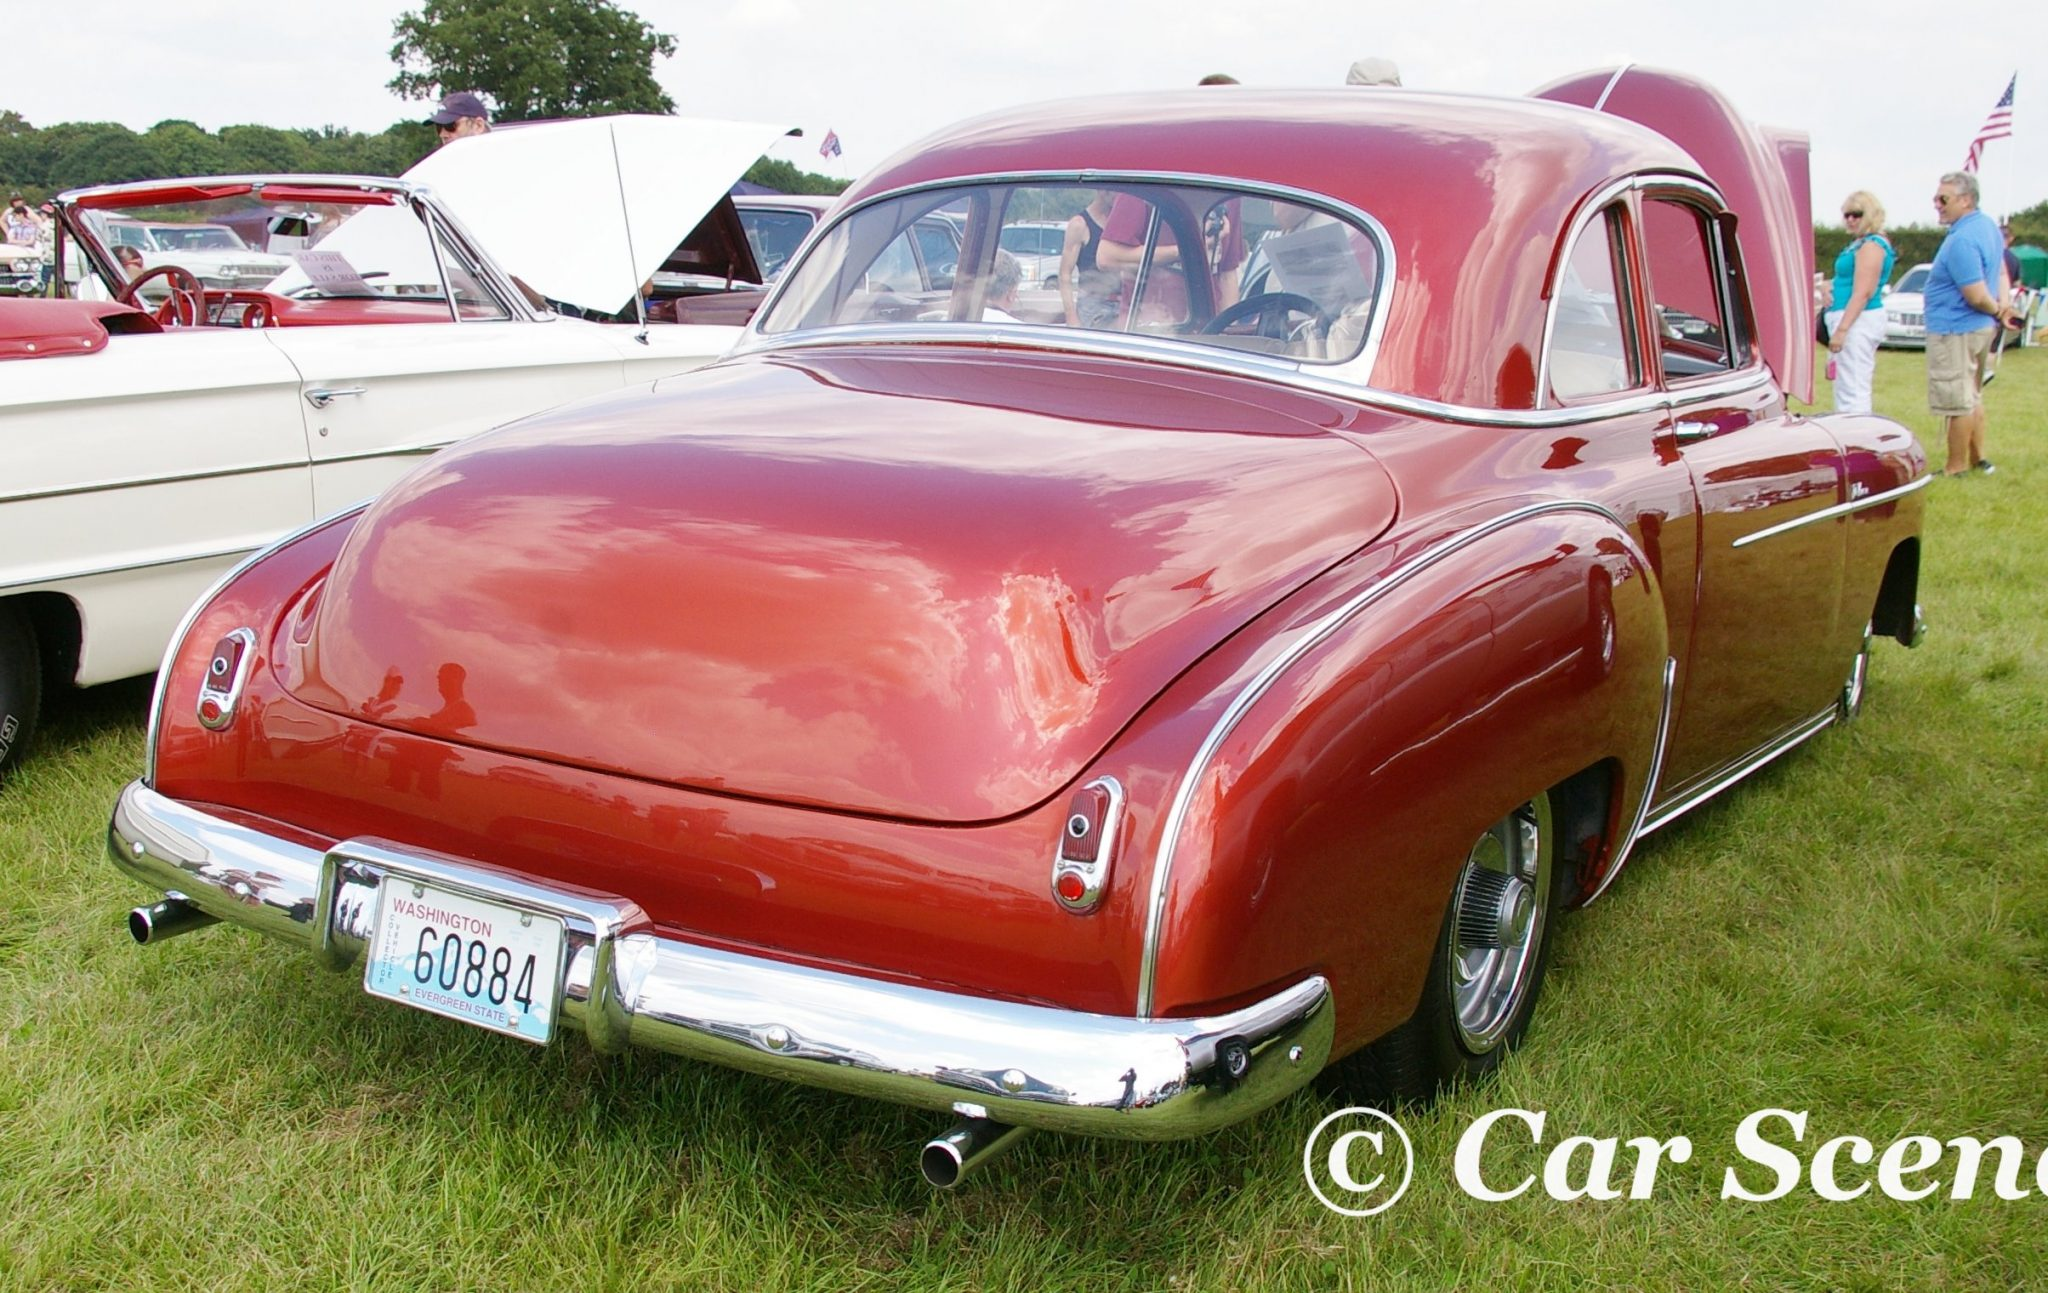 1950s Chevrolet Coupe Deluxe rear view